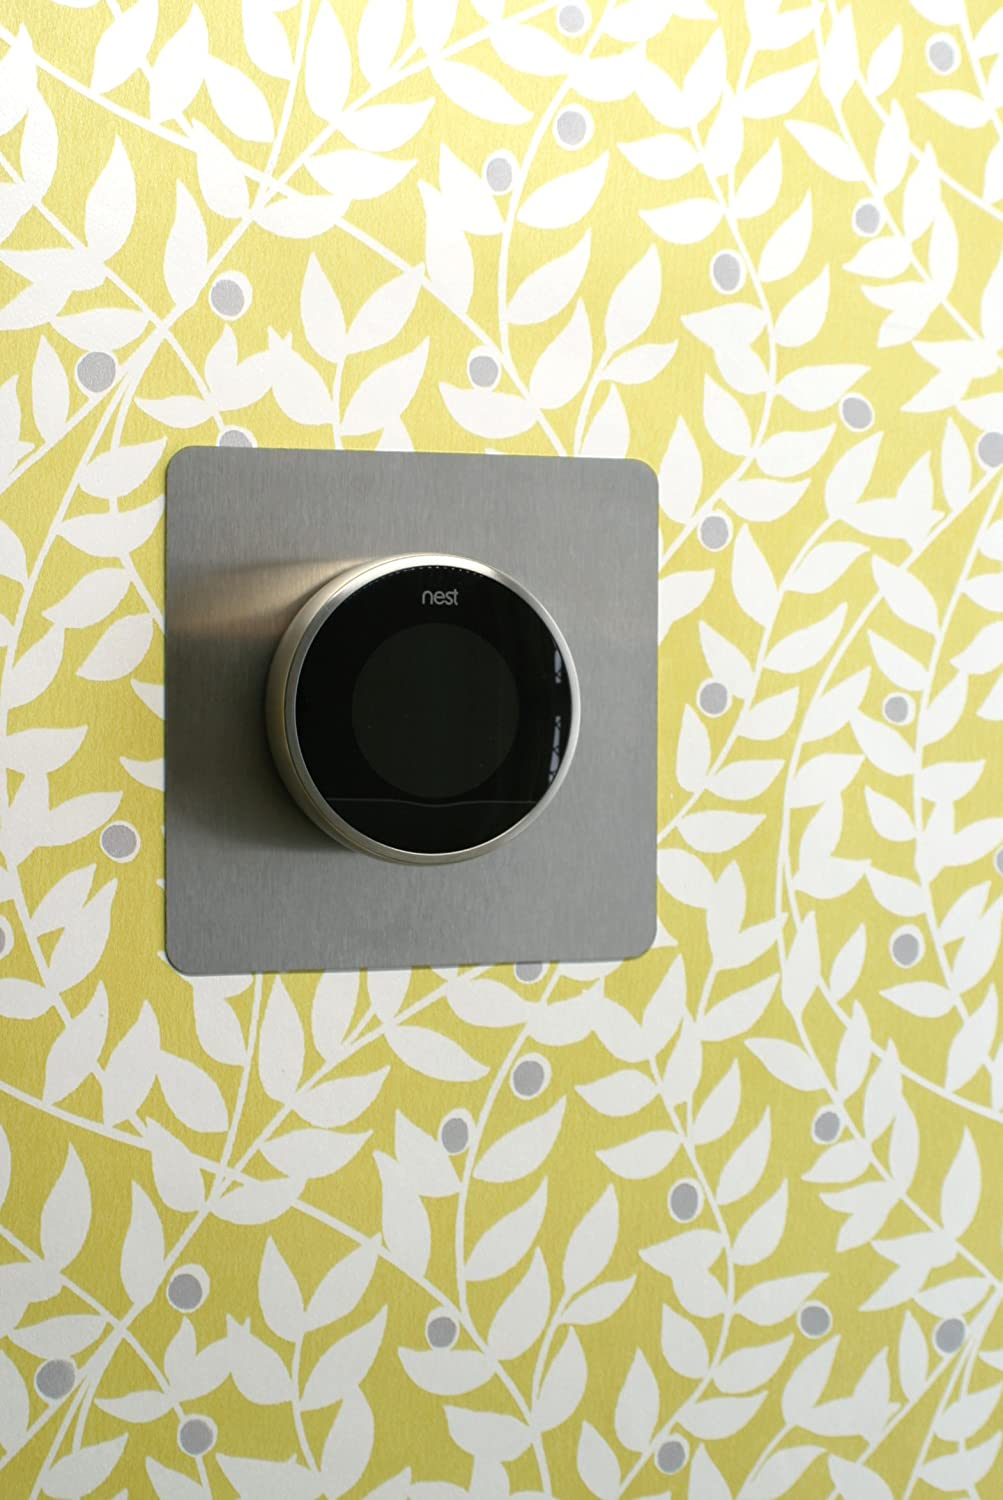 Nest Thermostat Backing Plate by Formonic. Square stainless steel ...